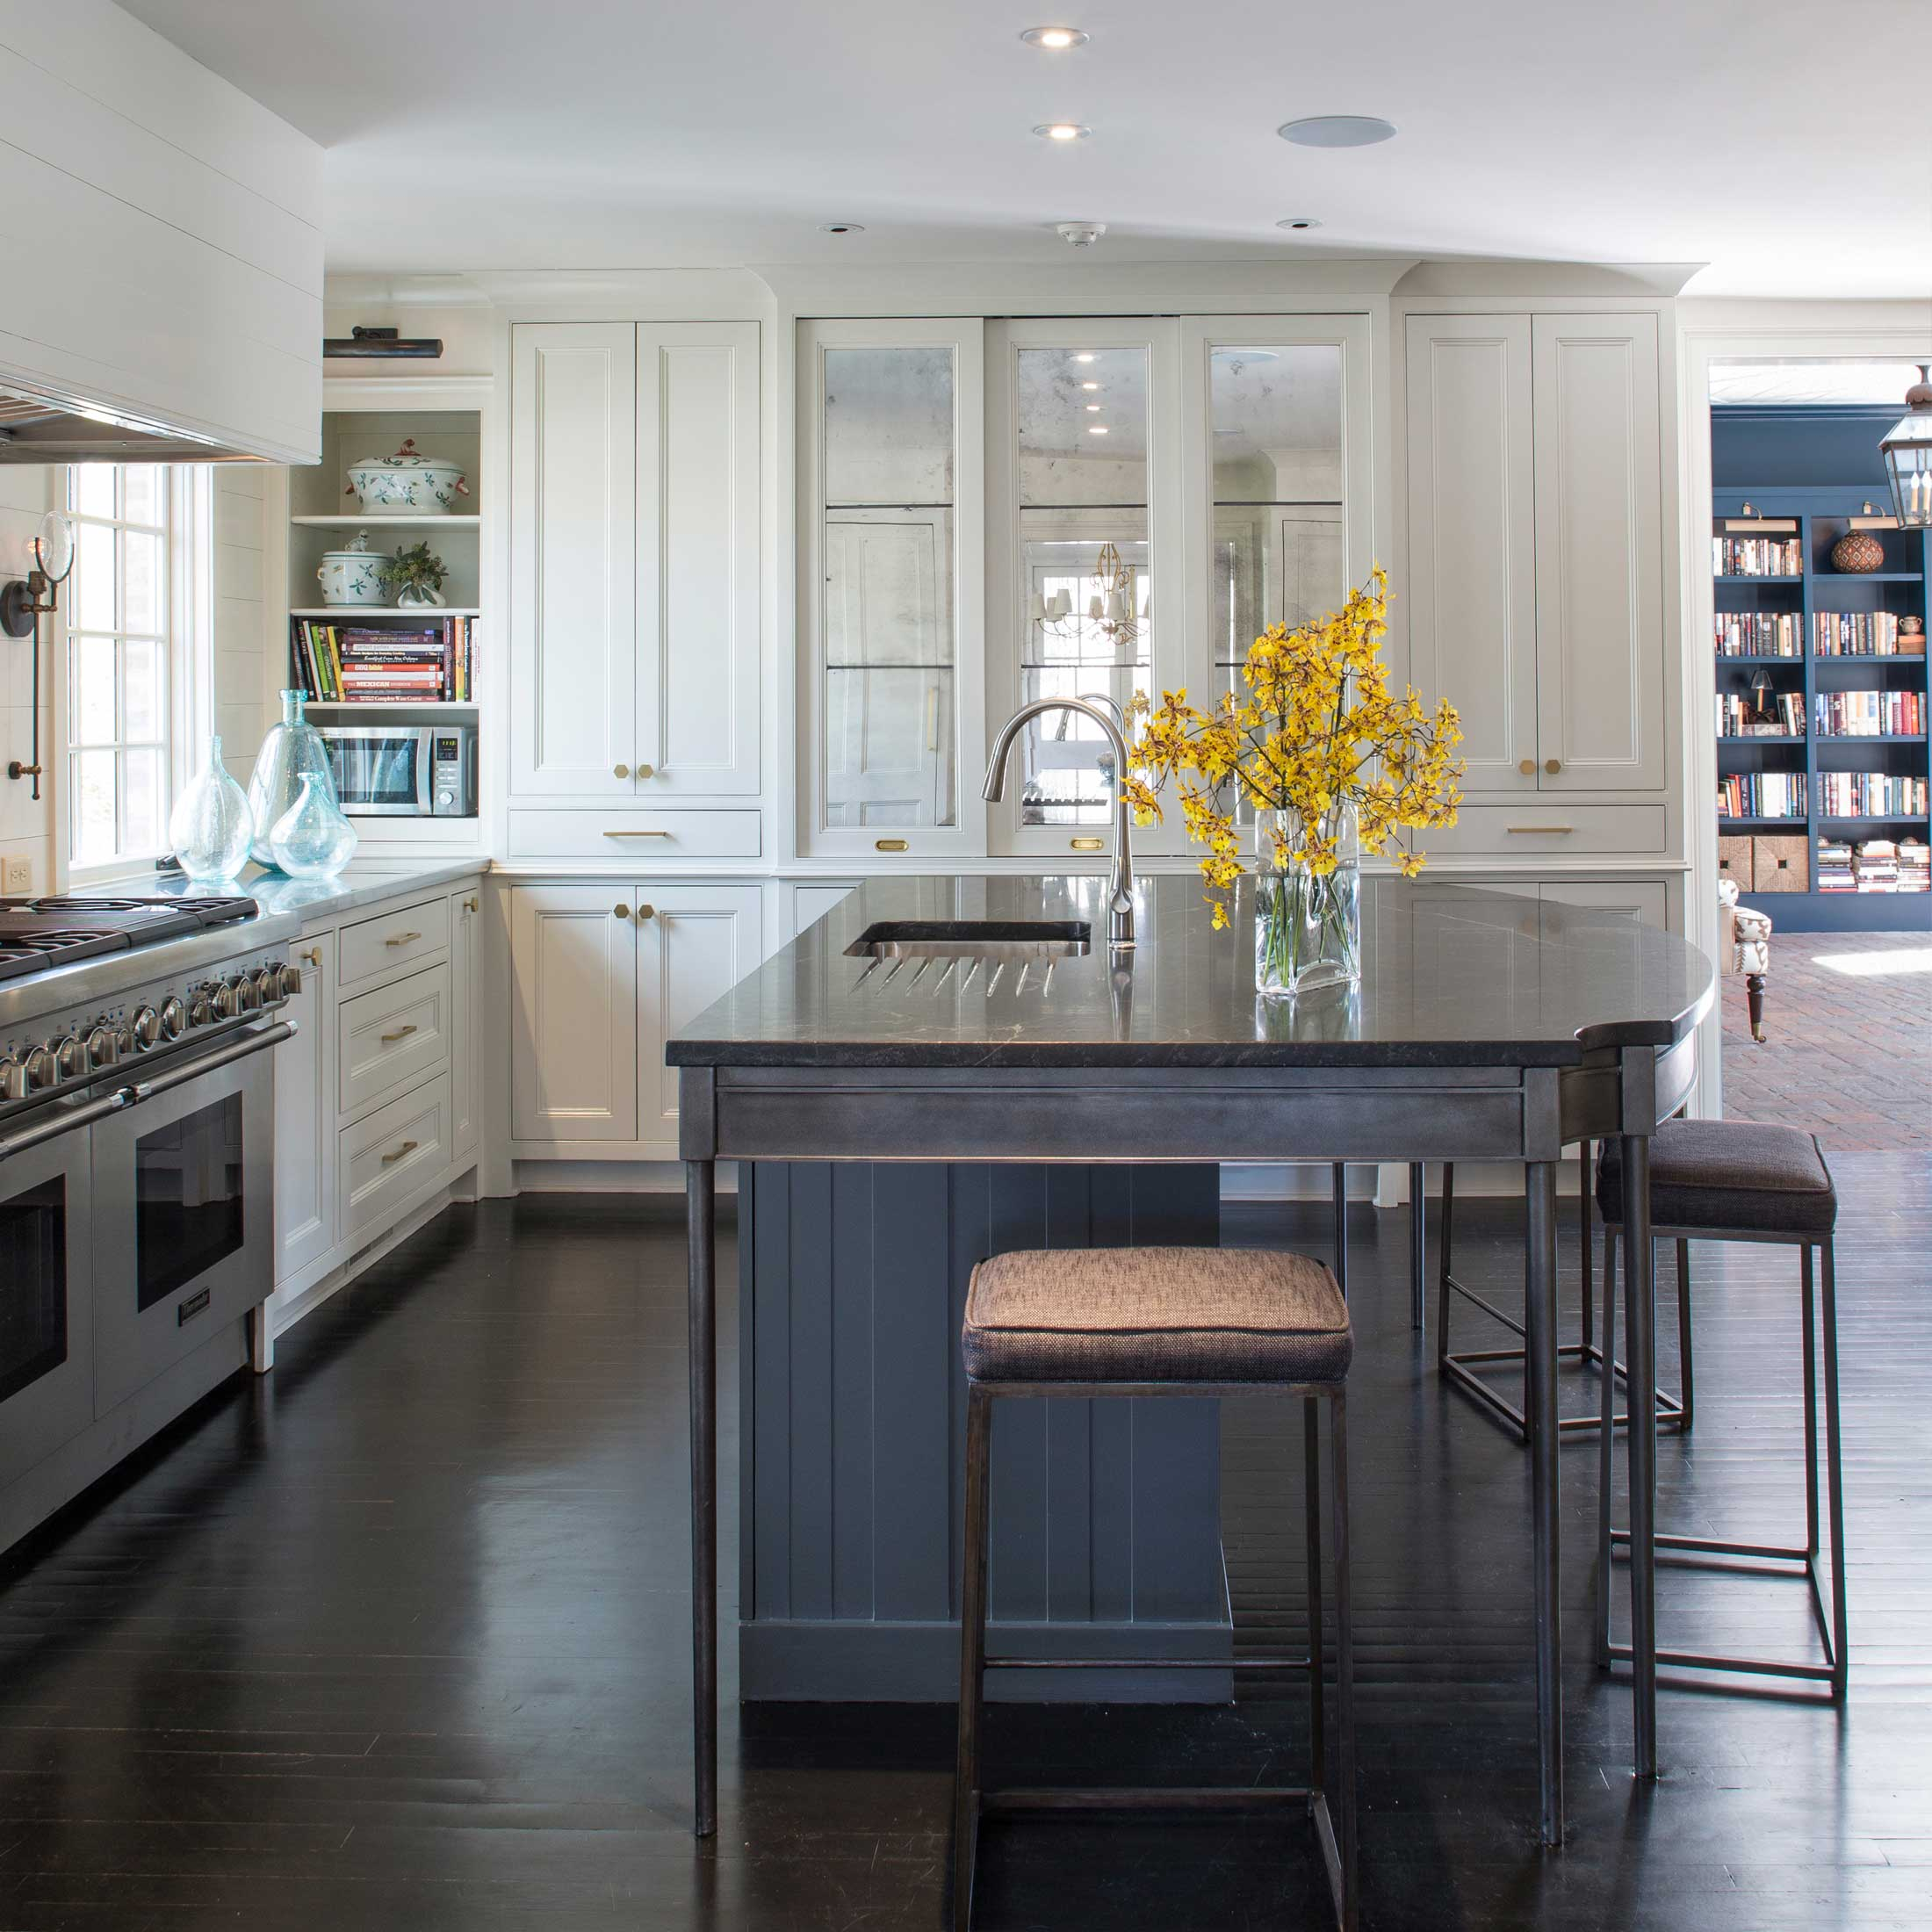 custom furniture and cabinetry for kitchen renovation in Memphis